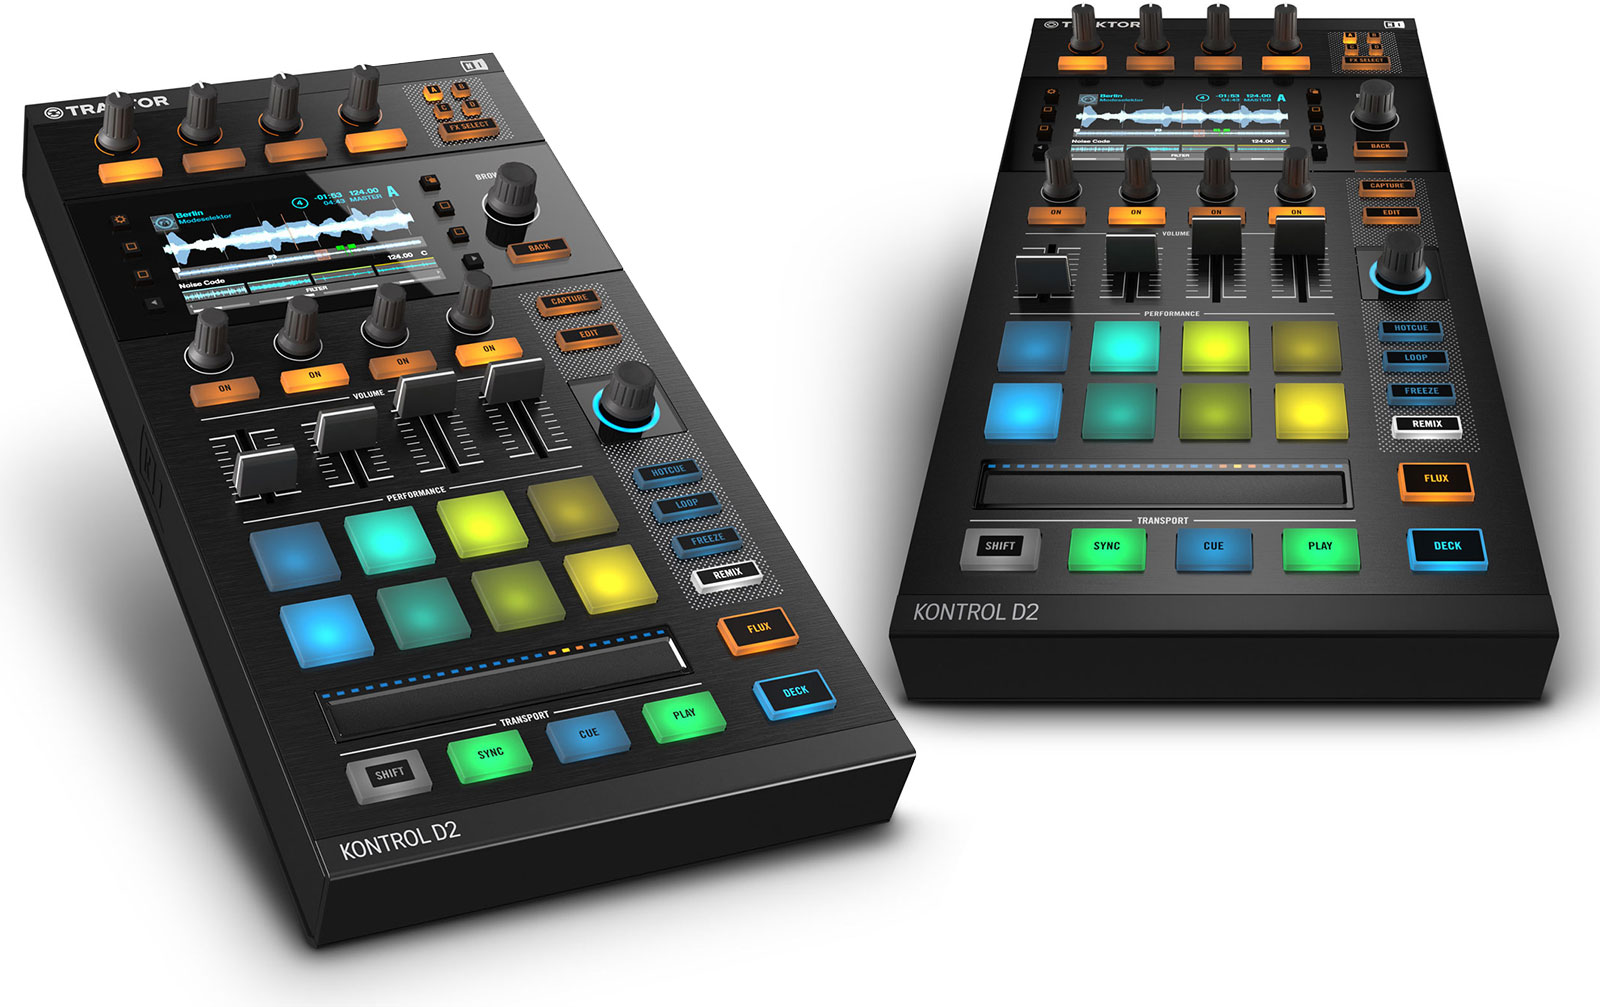 kontrol d2 for traktor tested and reviewed